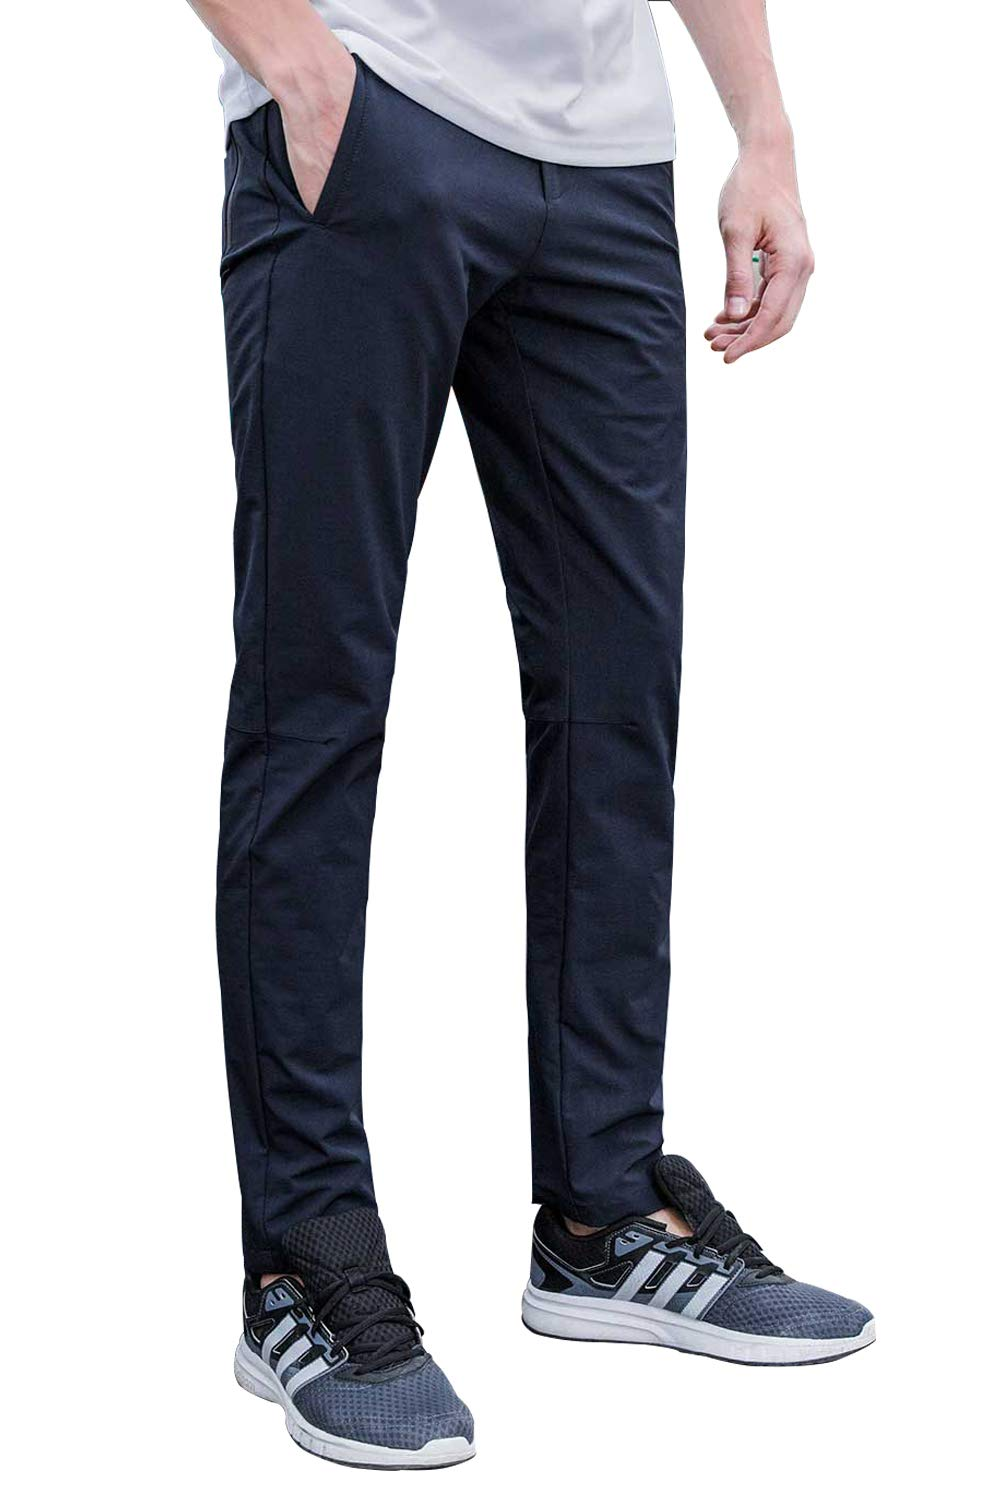 Aoli Ray Men's Spring Summer Slim Fit Stretchy Casual Pants Outdoor Sports Quick-Dry Lightweight Waterproof Trousers … (Dark Blue, 30)